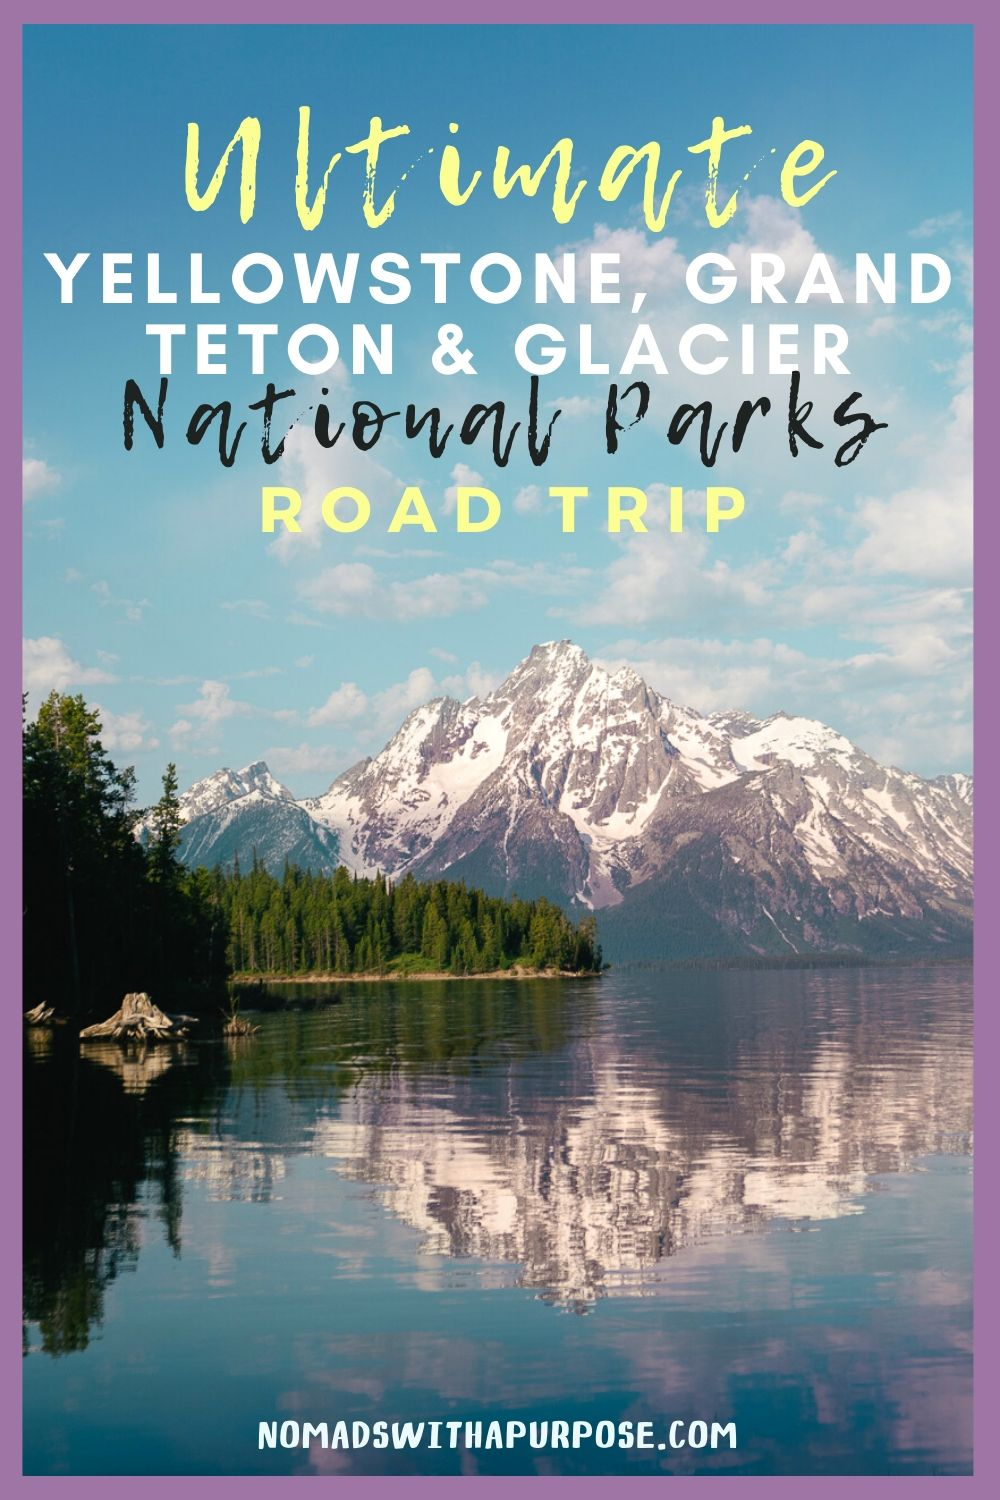 Grand Teton to Yellowstone to Glacier National Parks Road Trip Pin